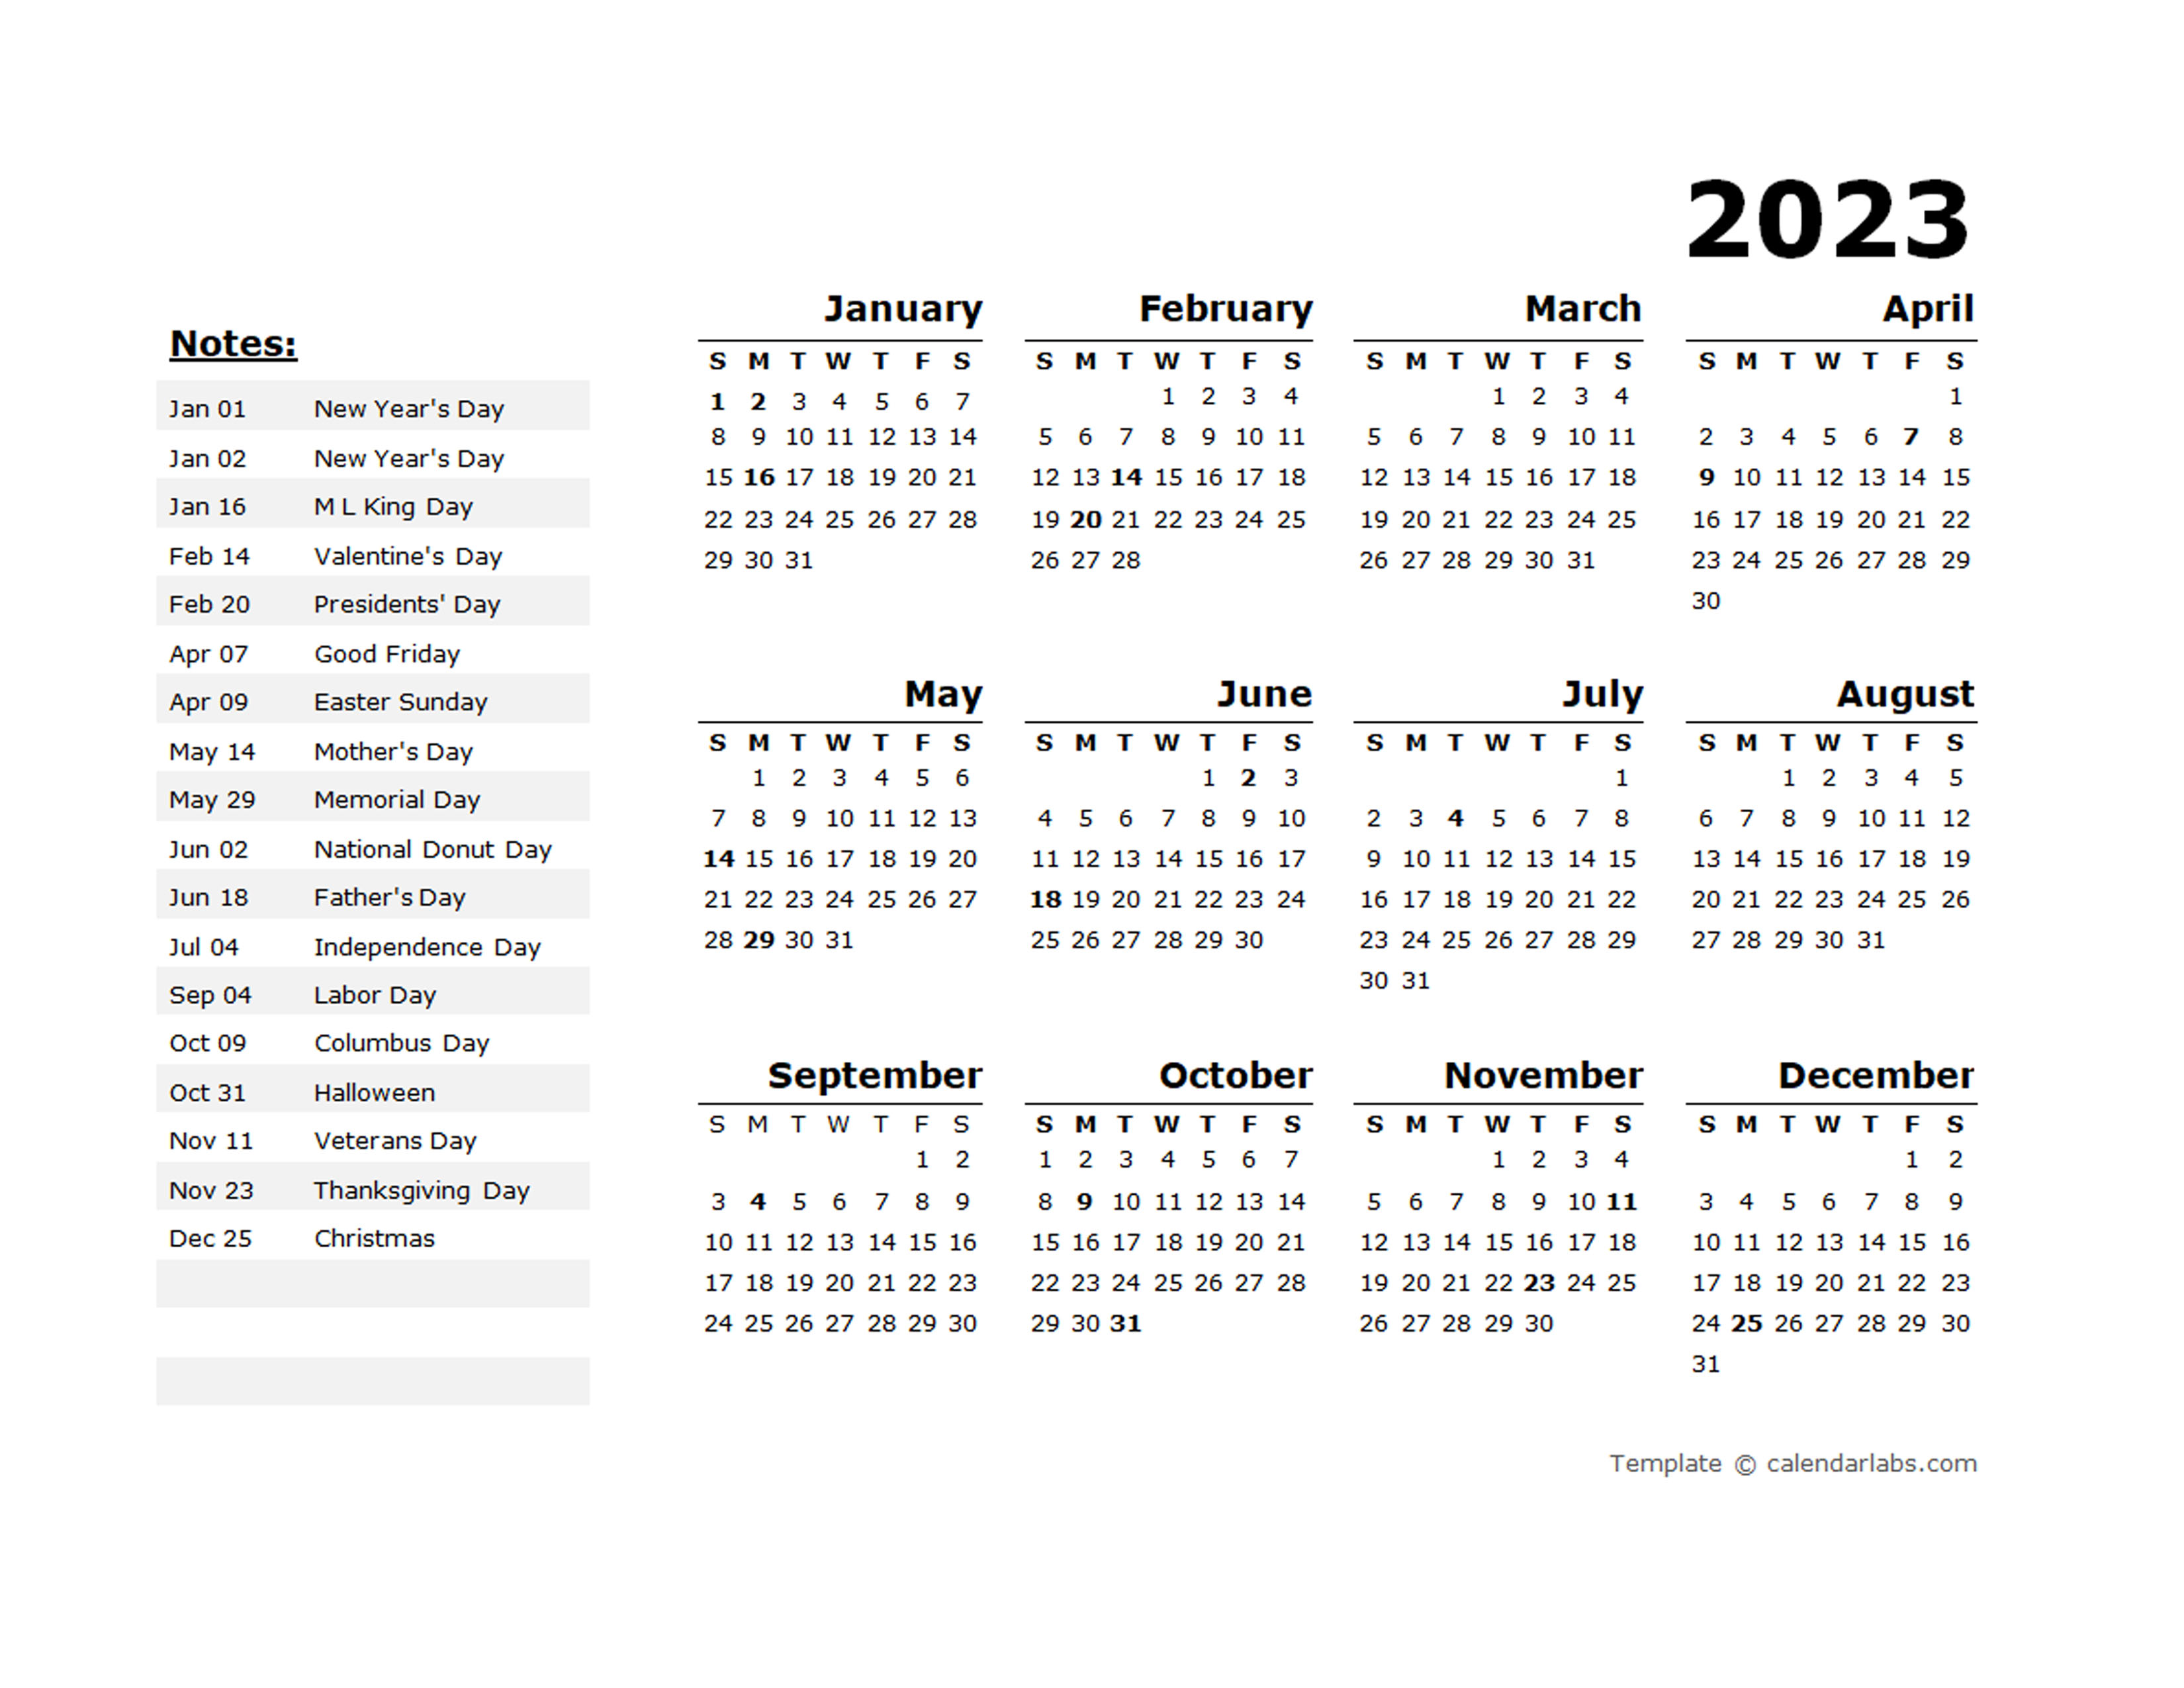 2023 Year Calendar Template with US Holidays - Free ...